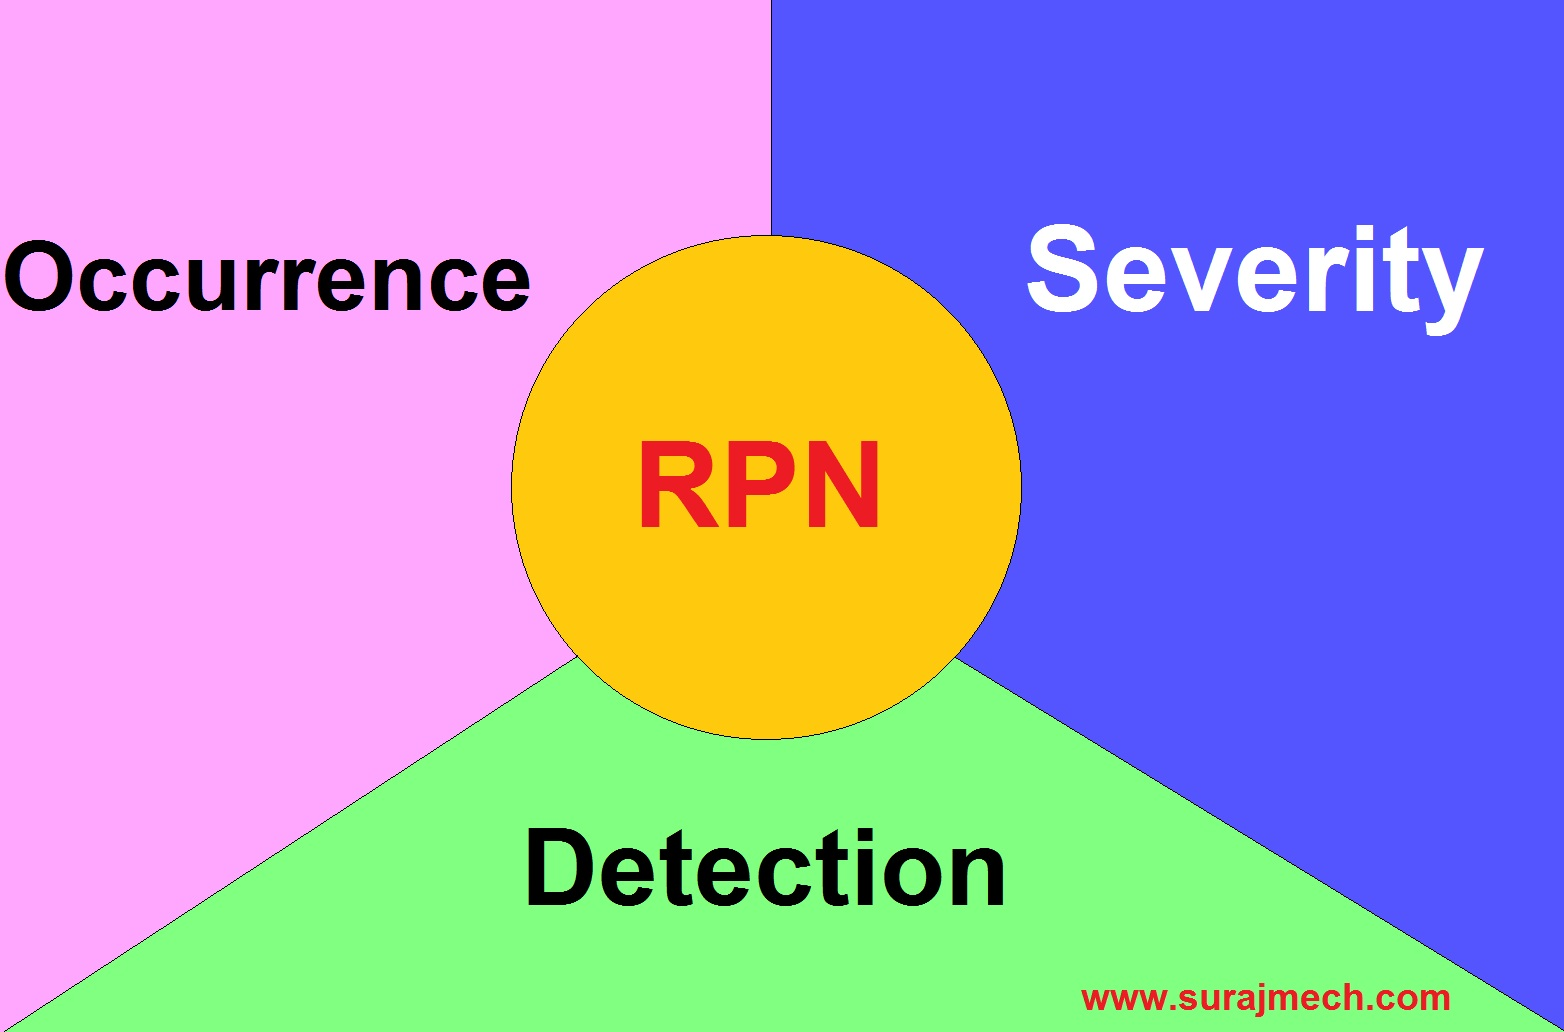 What is Severity, Occurence and Detection?